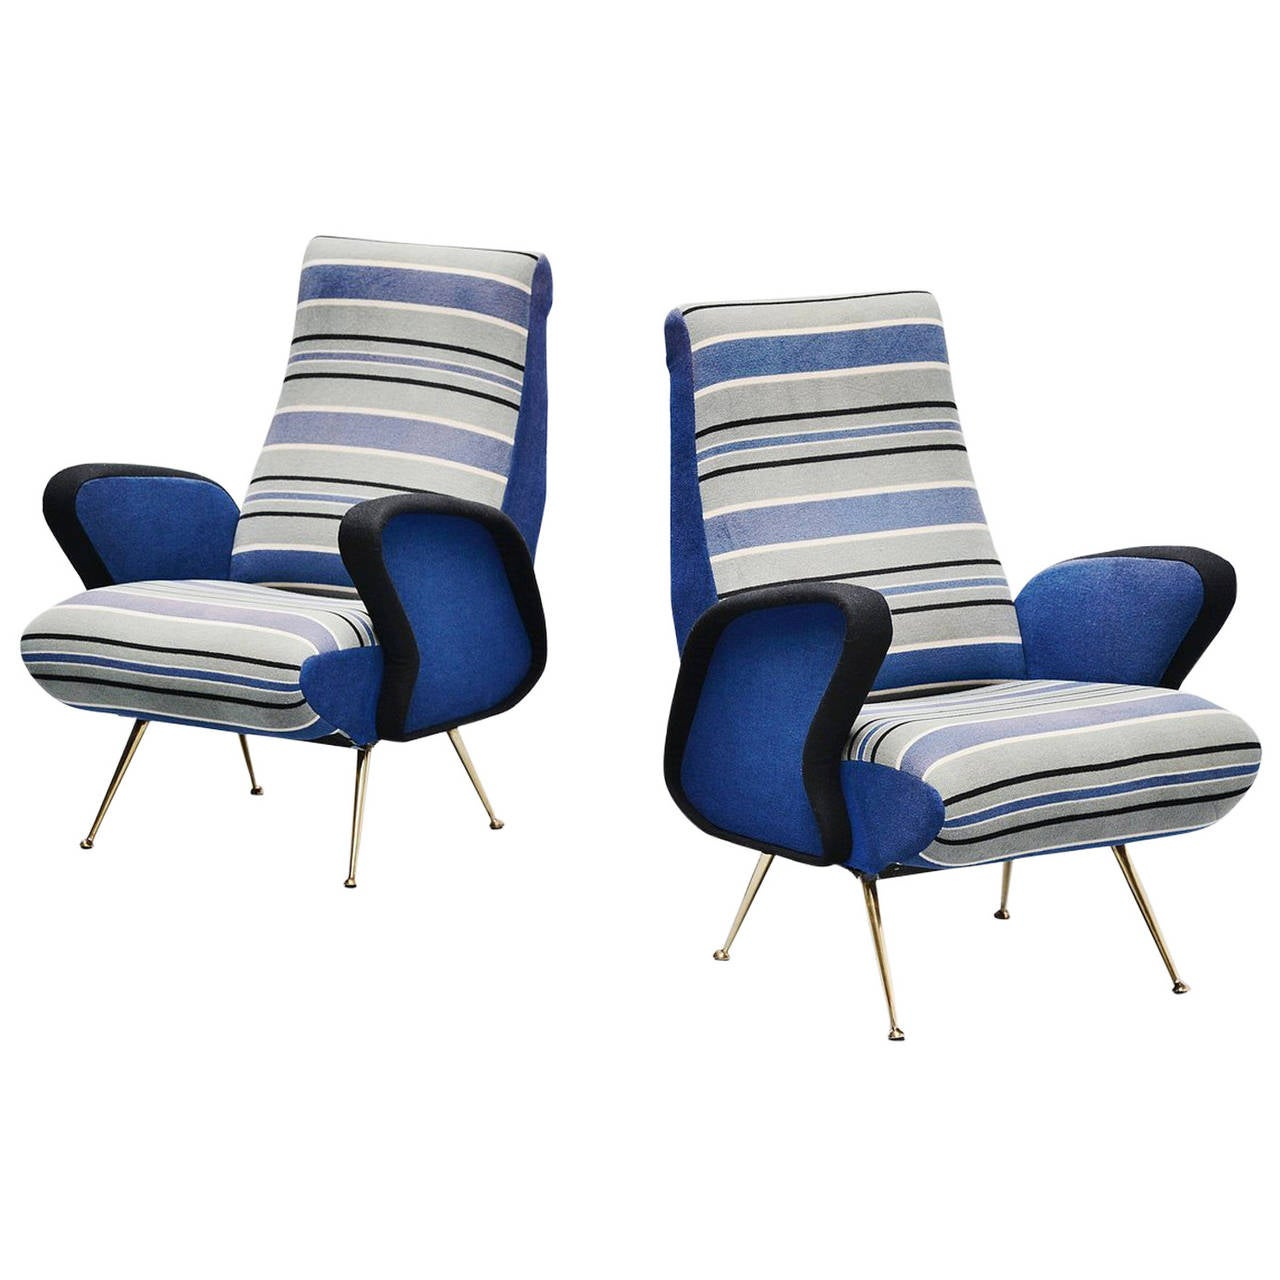 Arflex style lounge chairs with original fabric italy for 1950s chair styles